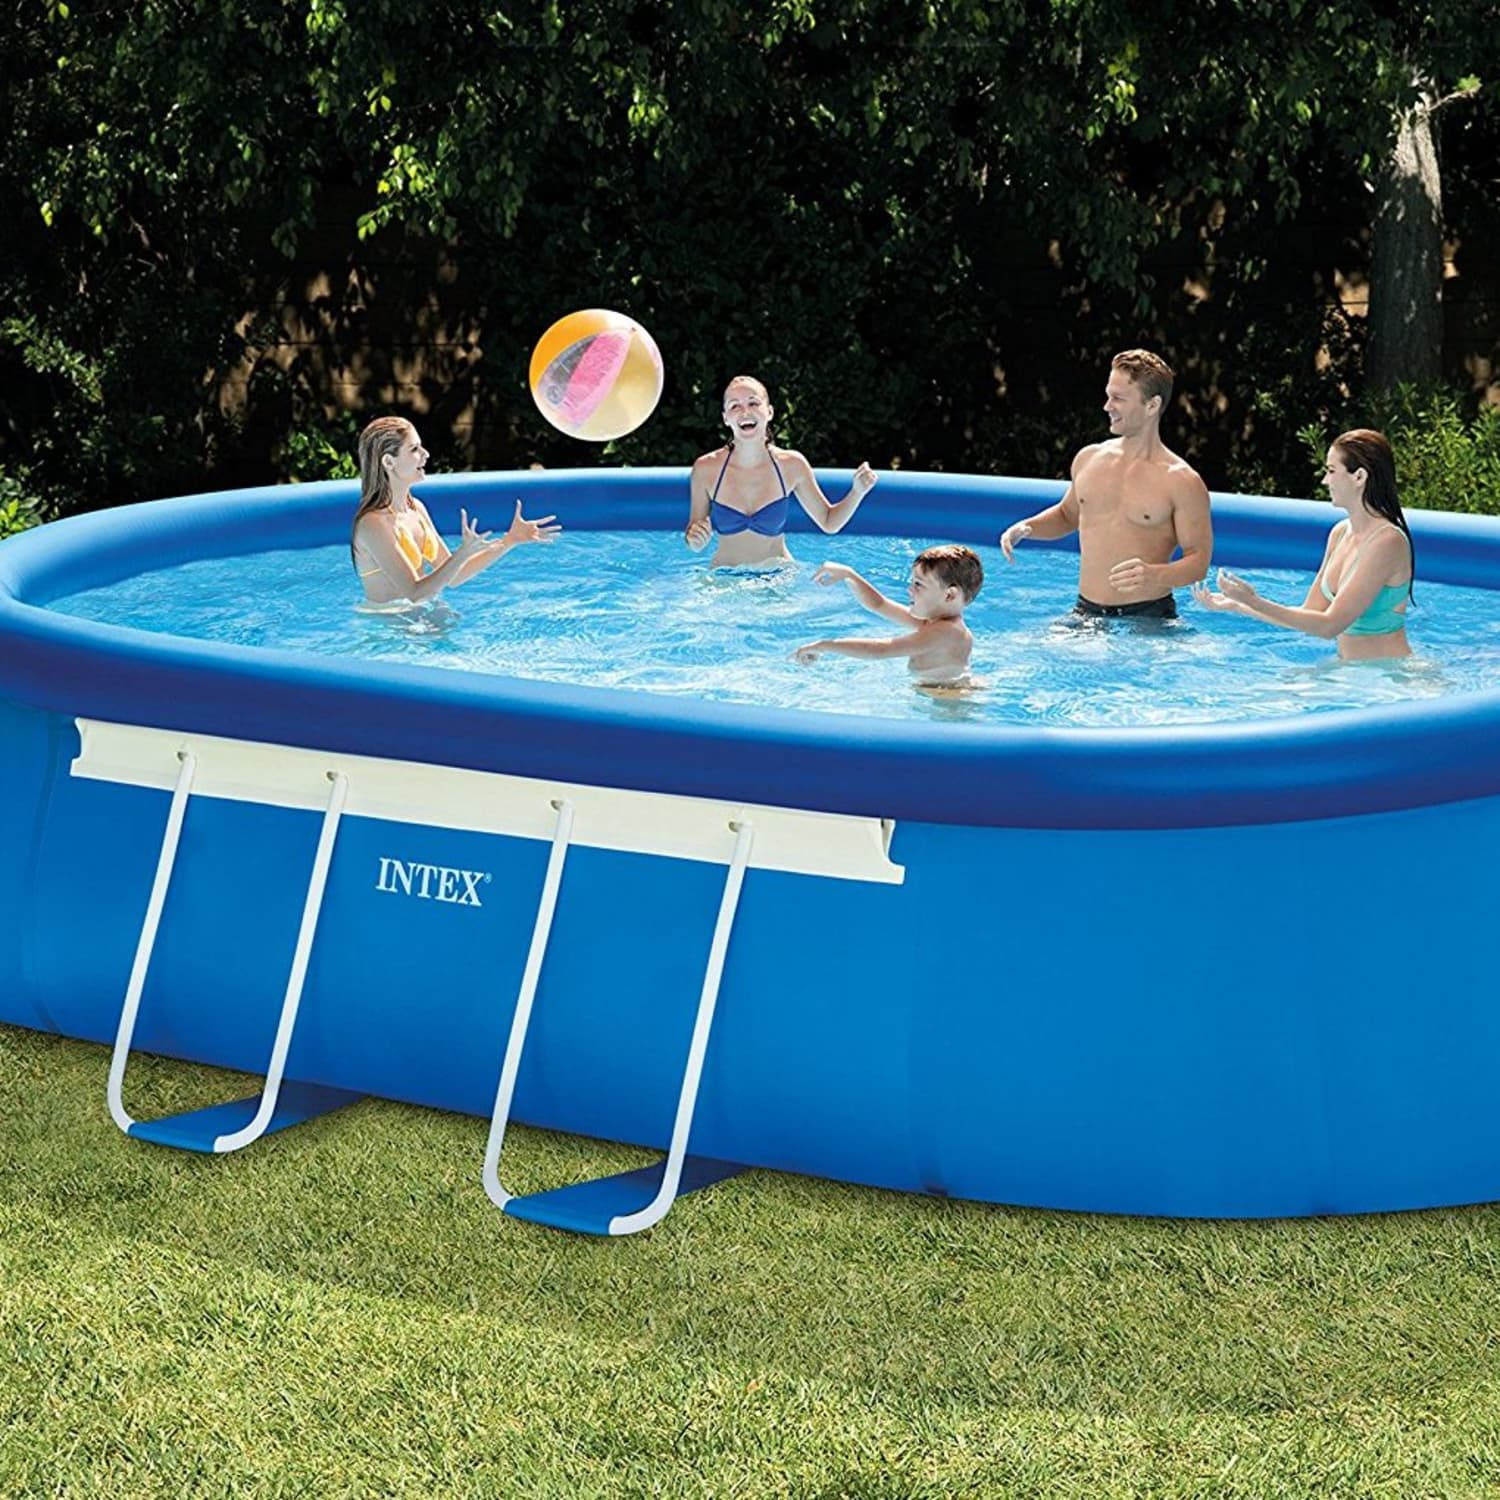 Intex Pools On Amazon The Best Portable Pools For Every Size Backyard Apartment Therapy